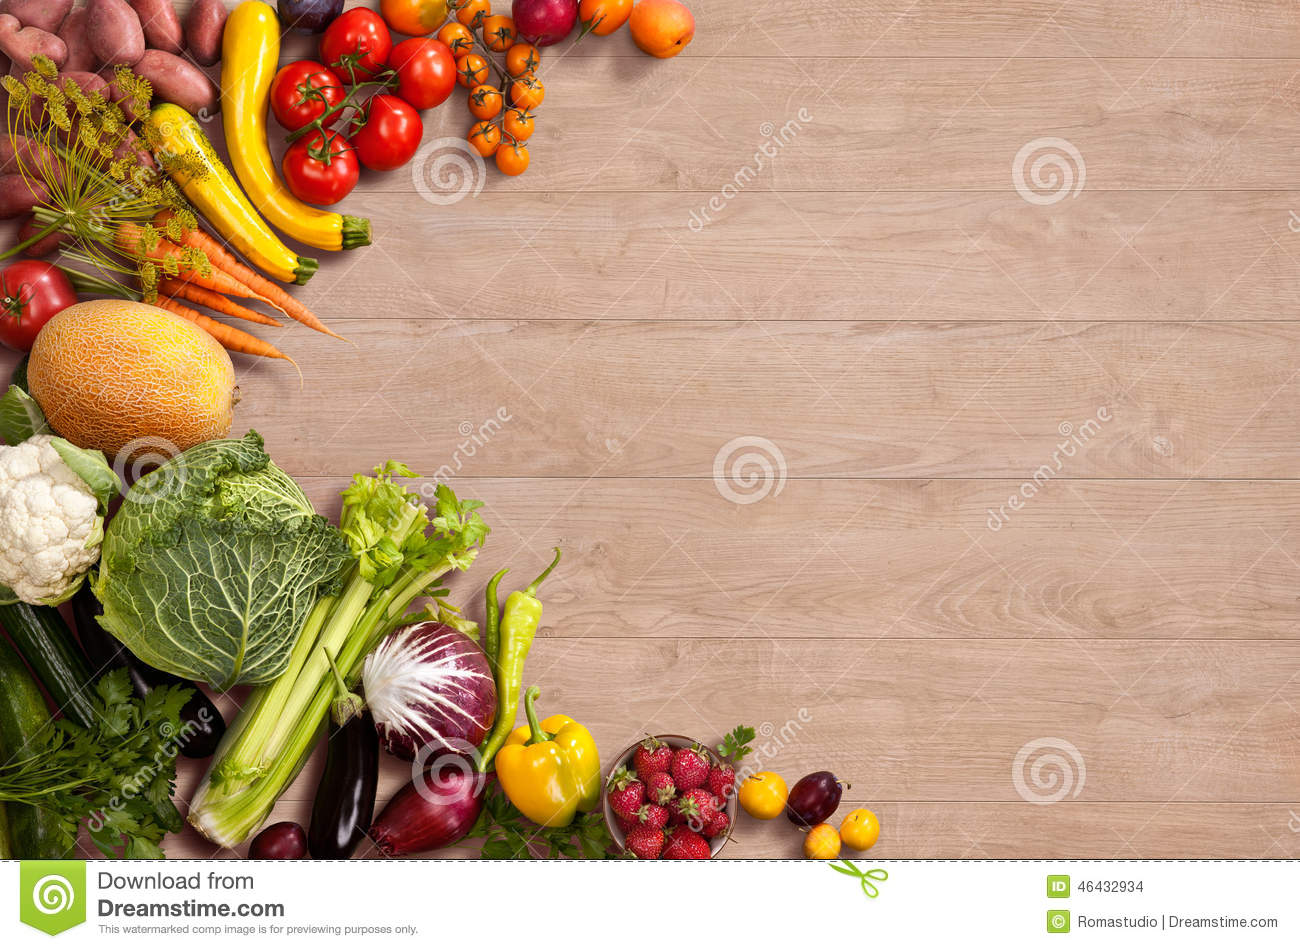 Studio photography of different fruits and vegetables on wooden table.